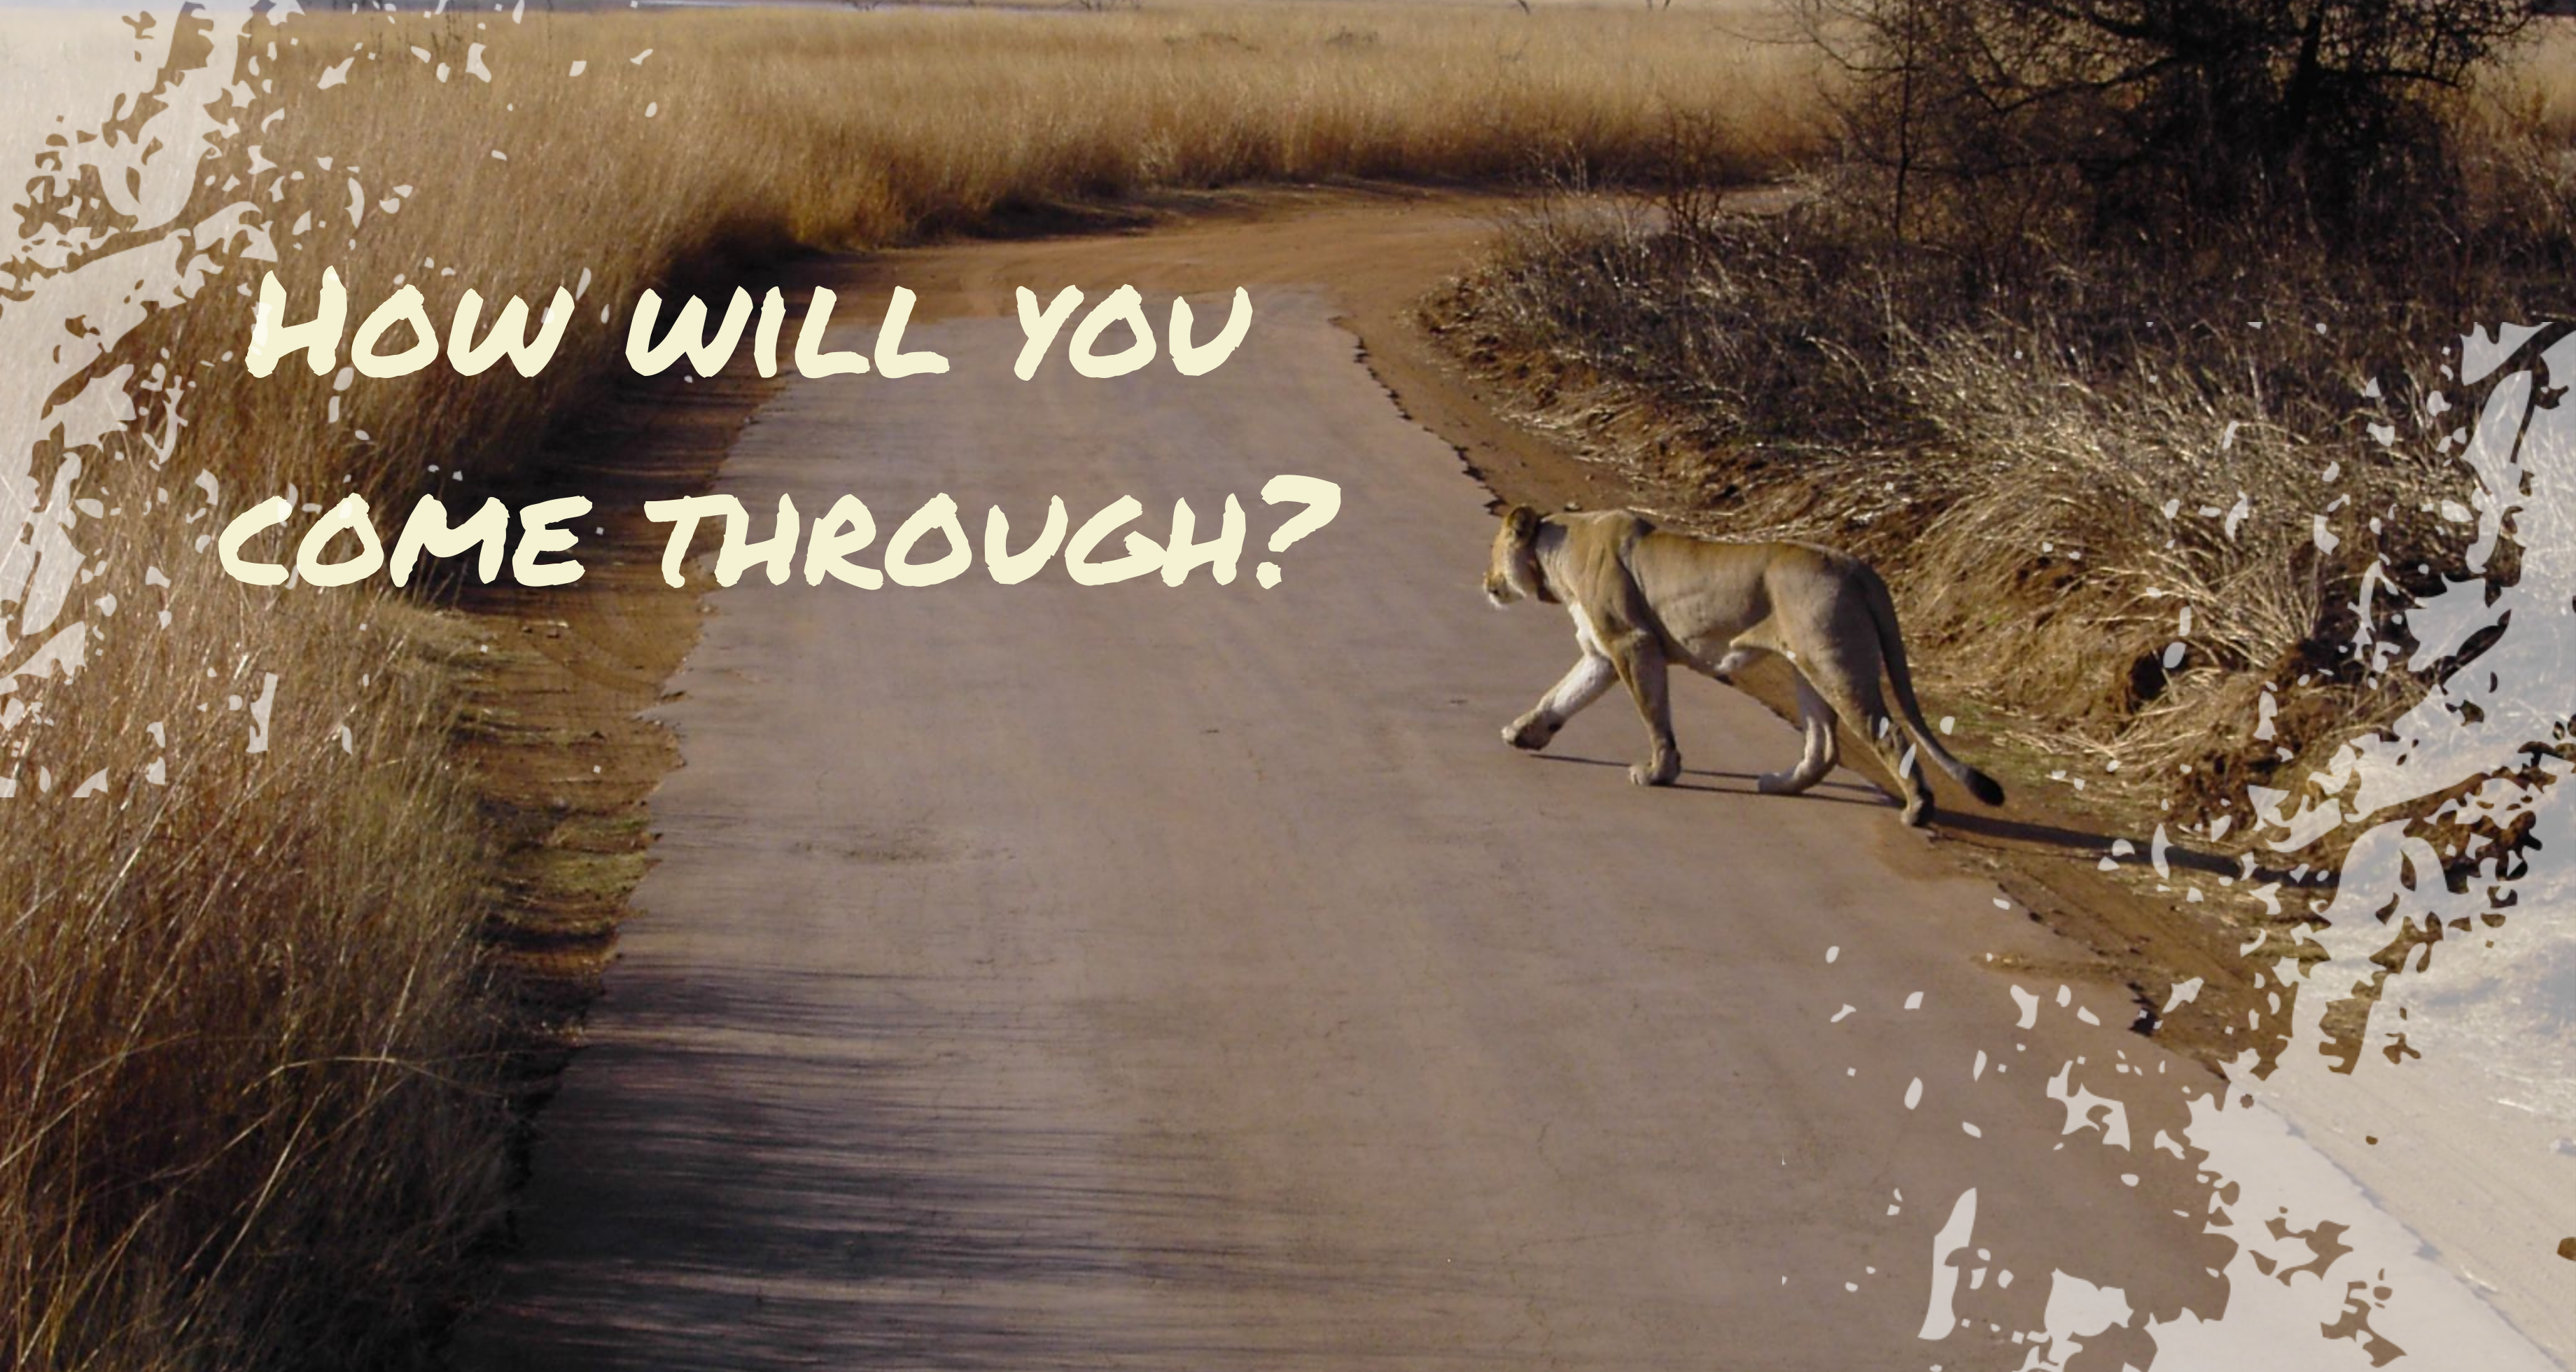 How Will You Come Through?